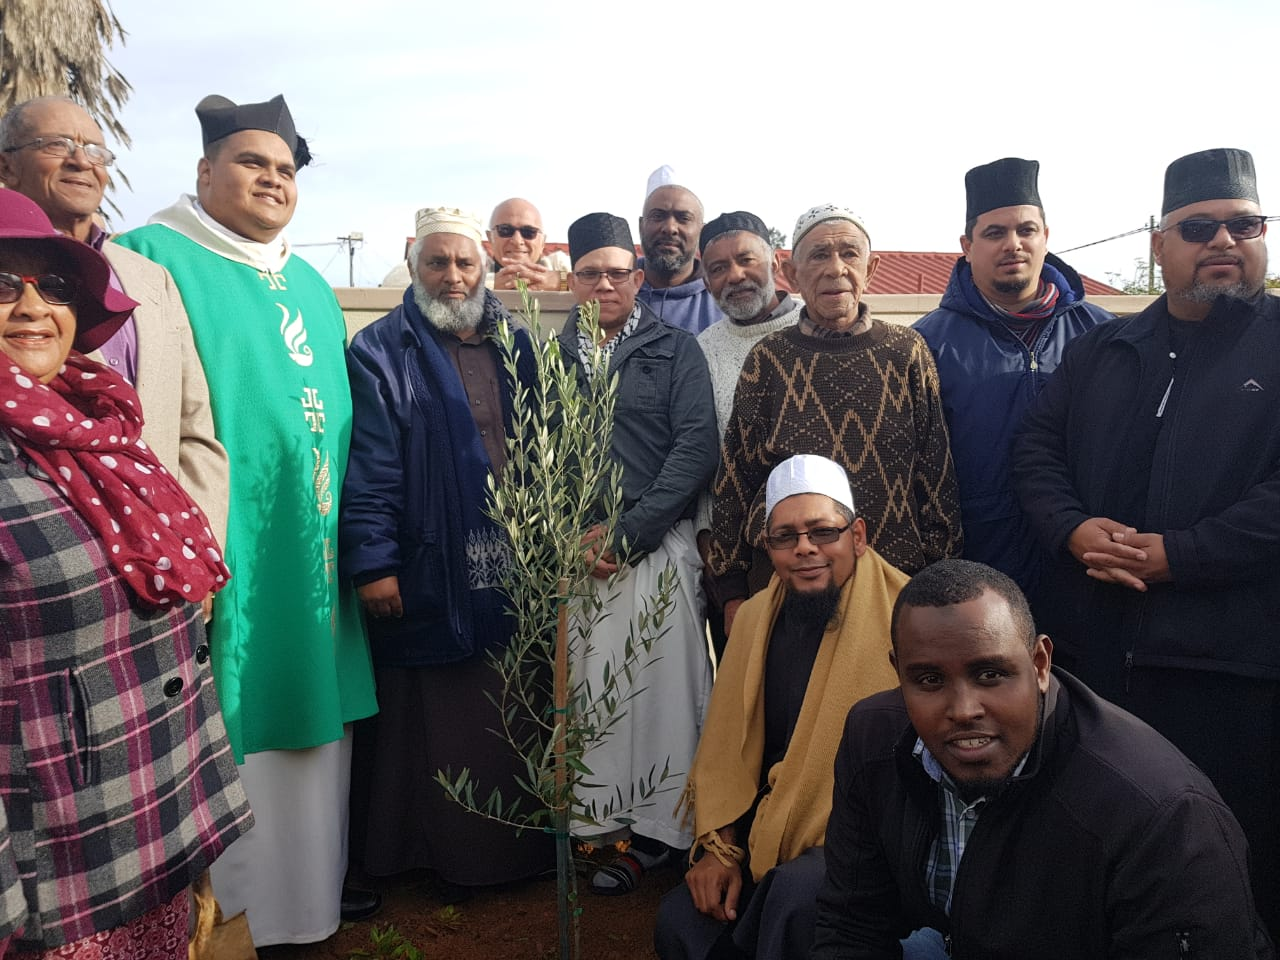 malmesbury community remains united despite tragedy - Interfaith malmesbury - Malmesbury community remains united despite tragedy